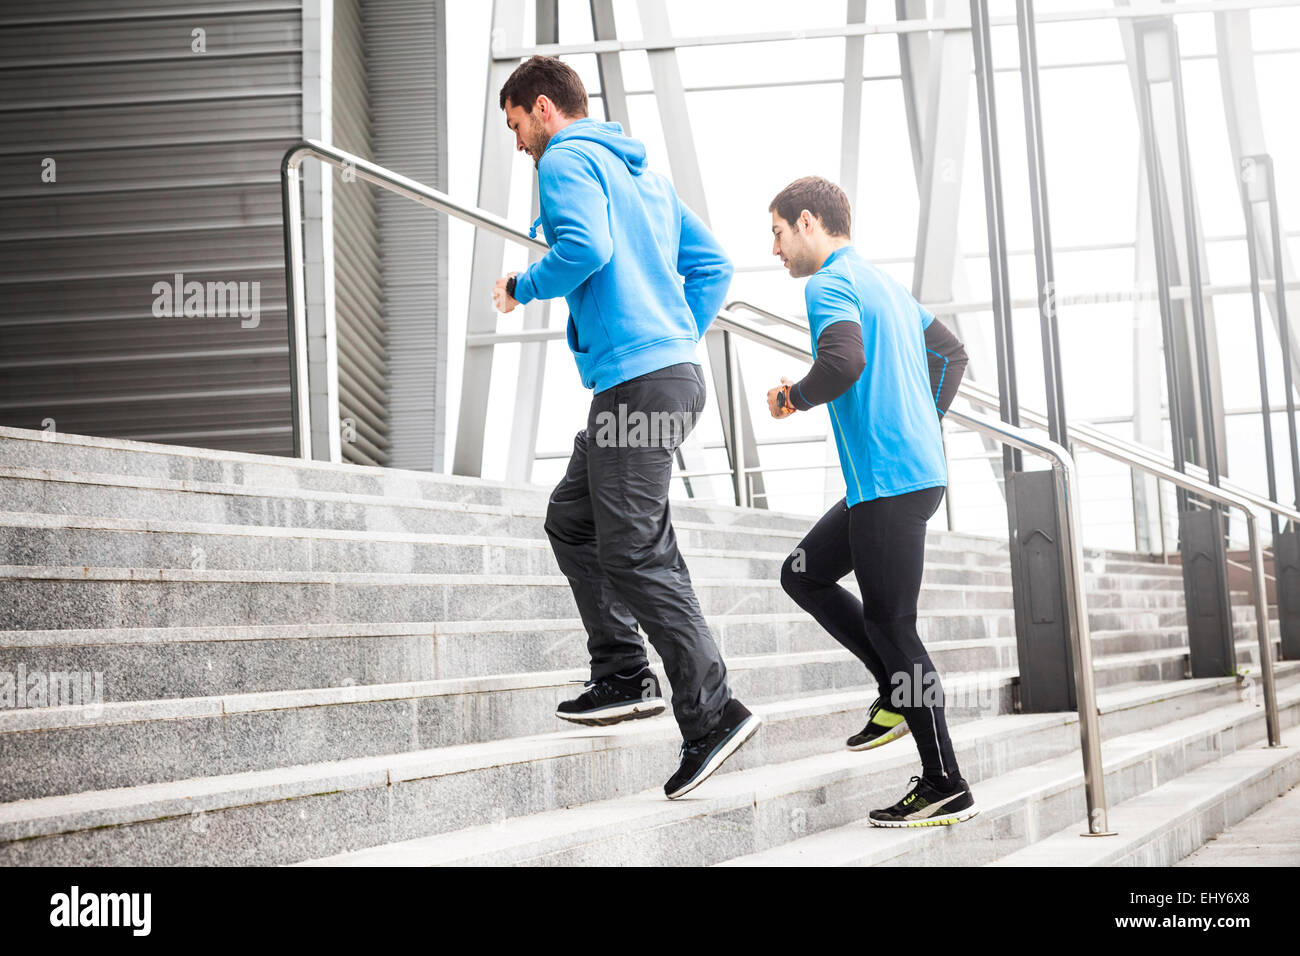 Two male runners warming up on staircase - Stock Image